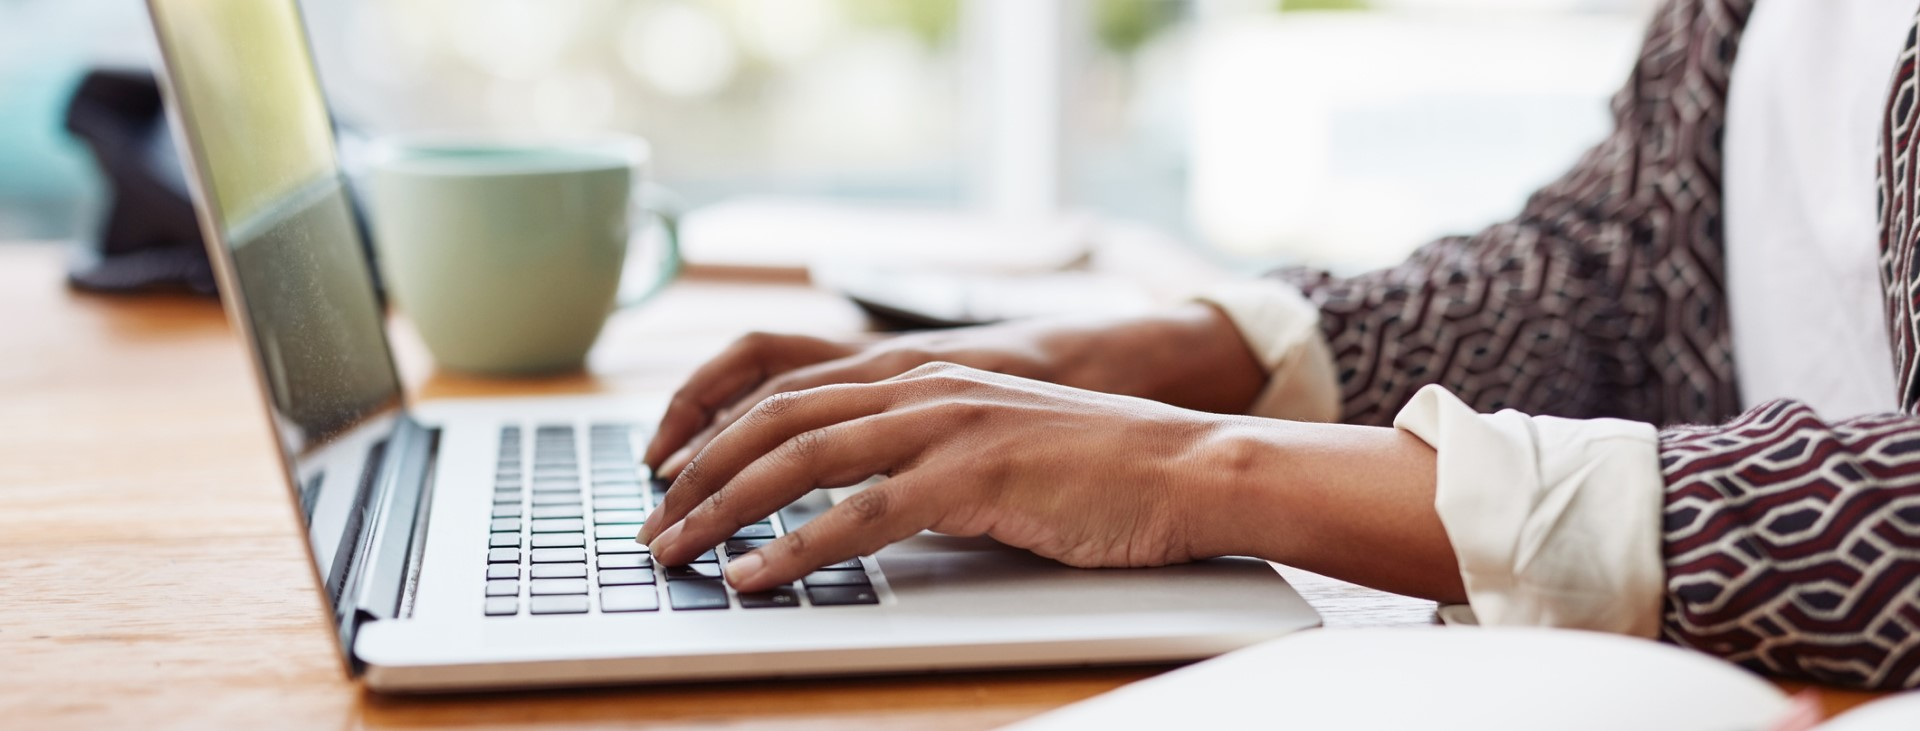 Person typing on a laptop keyboard.